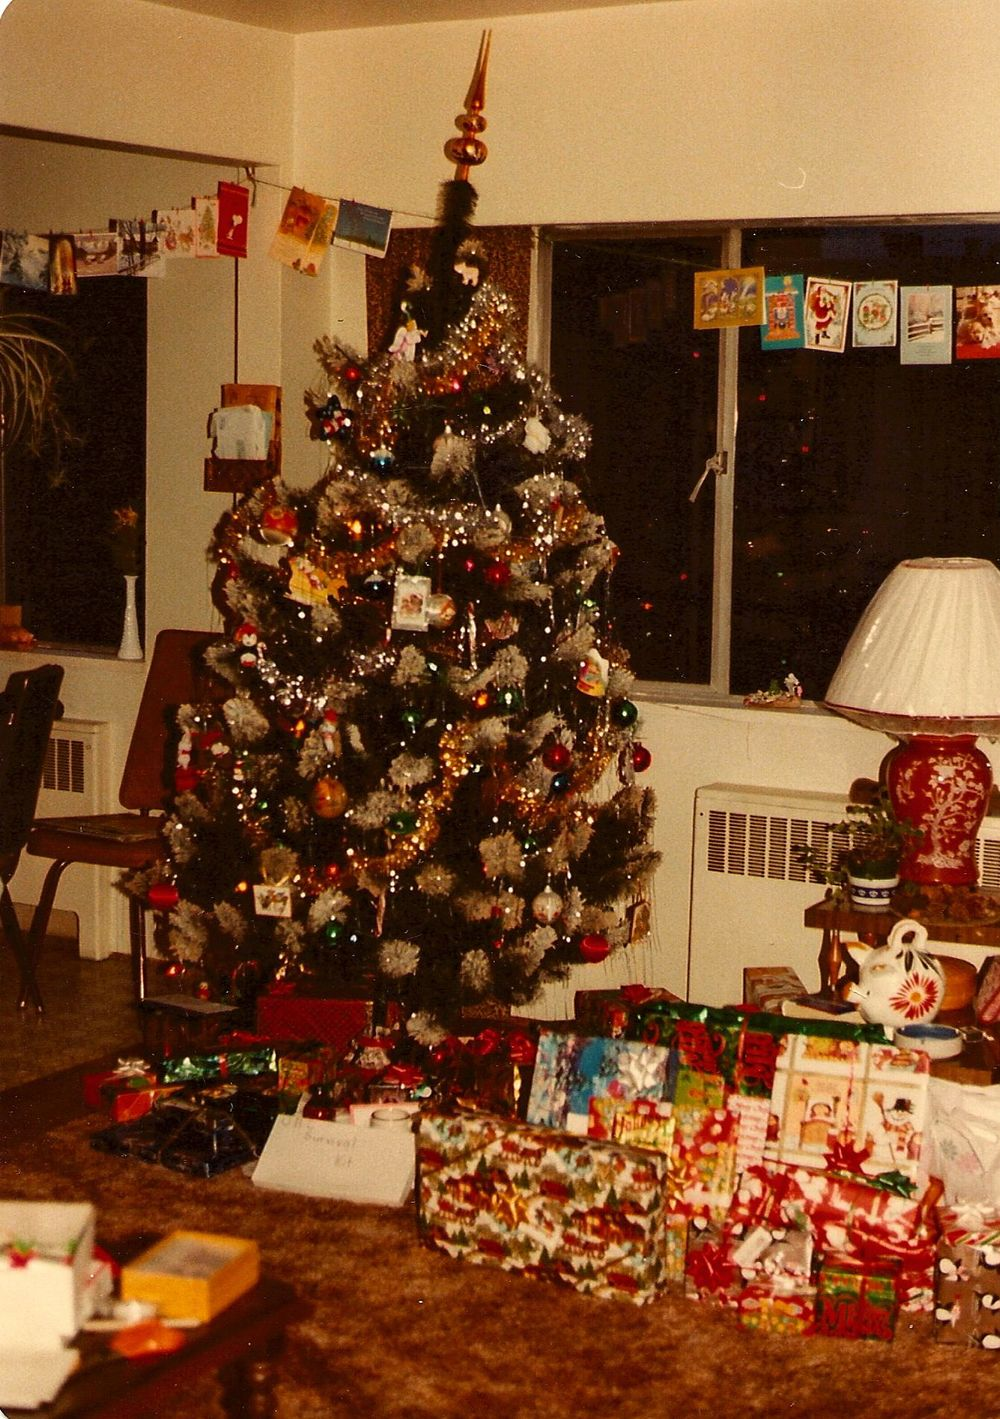 My mom gave me her old Christmas Tree in 1981